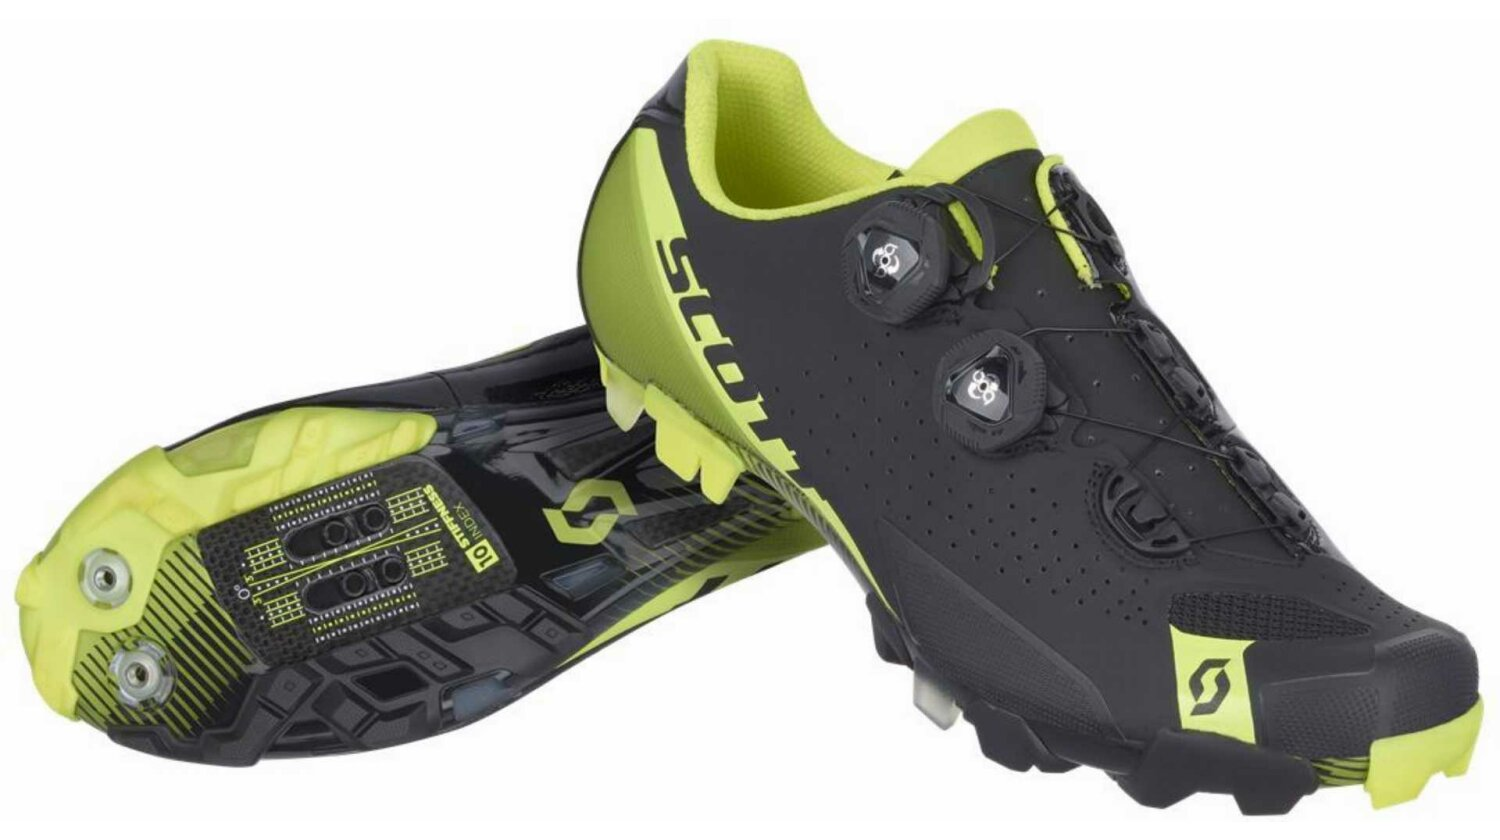 Scott MTB RC Schuh black/neon yellow 48